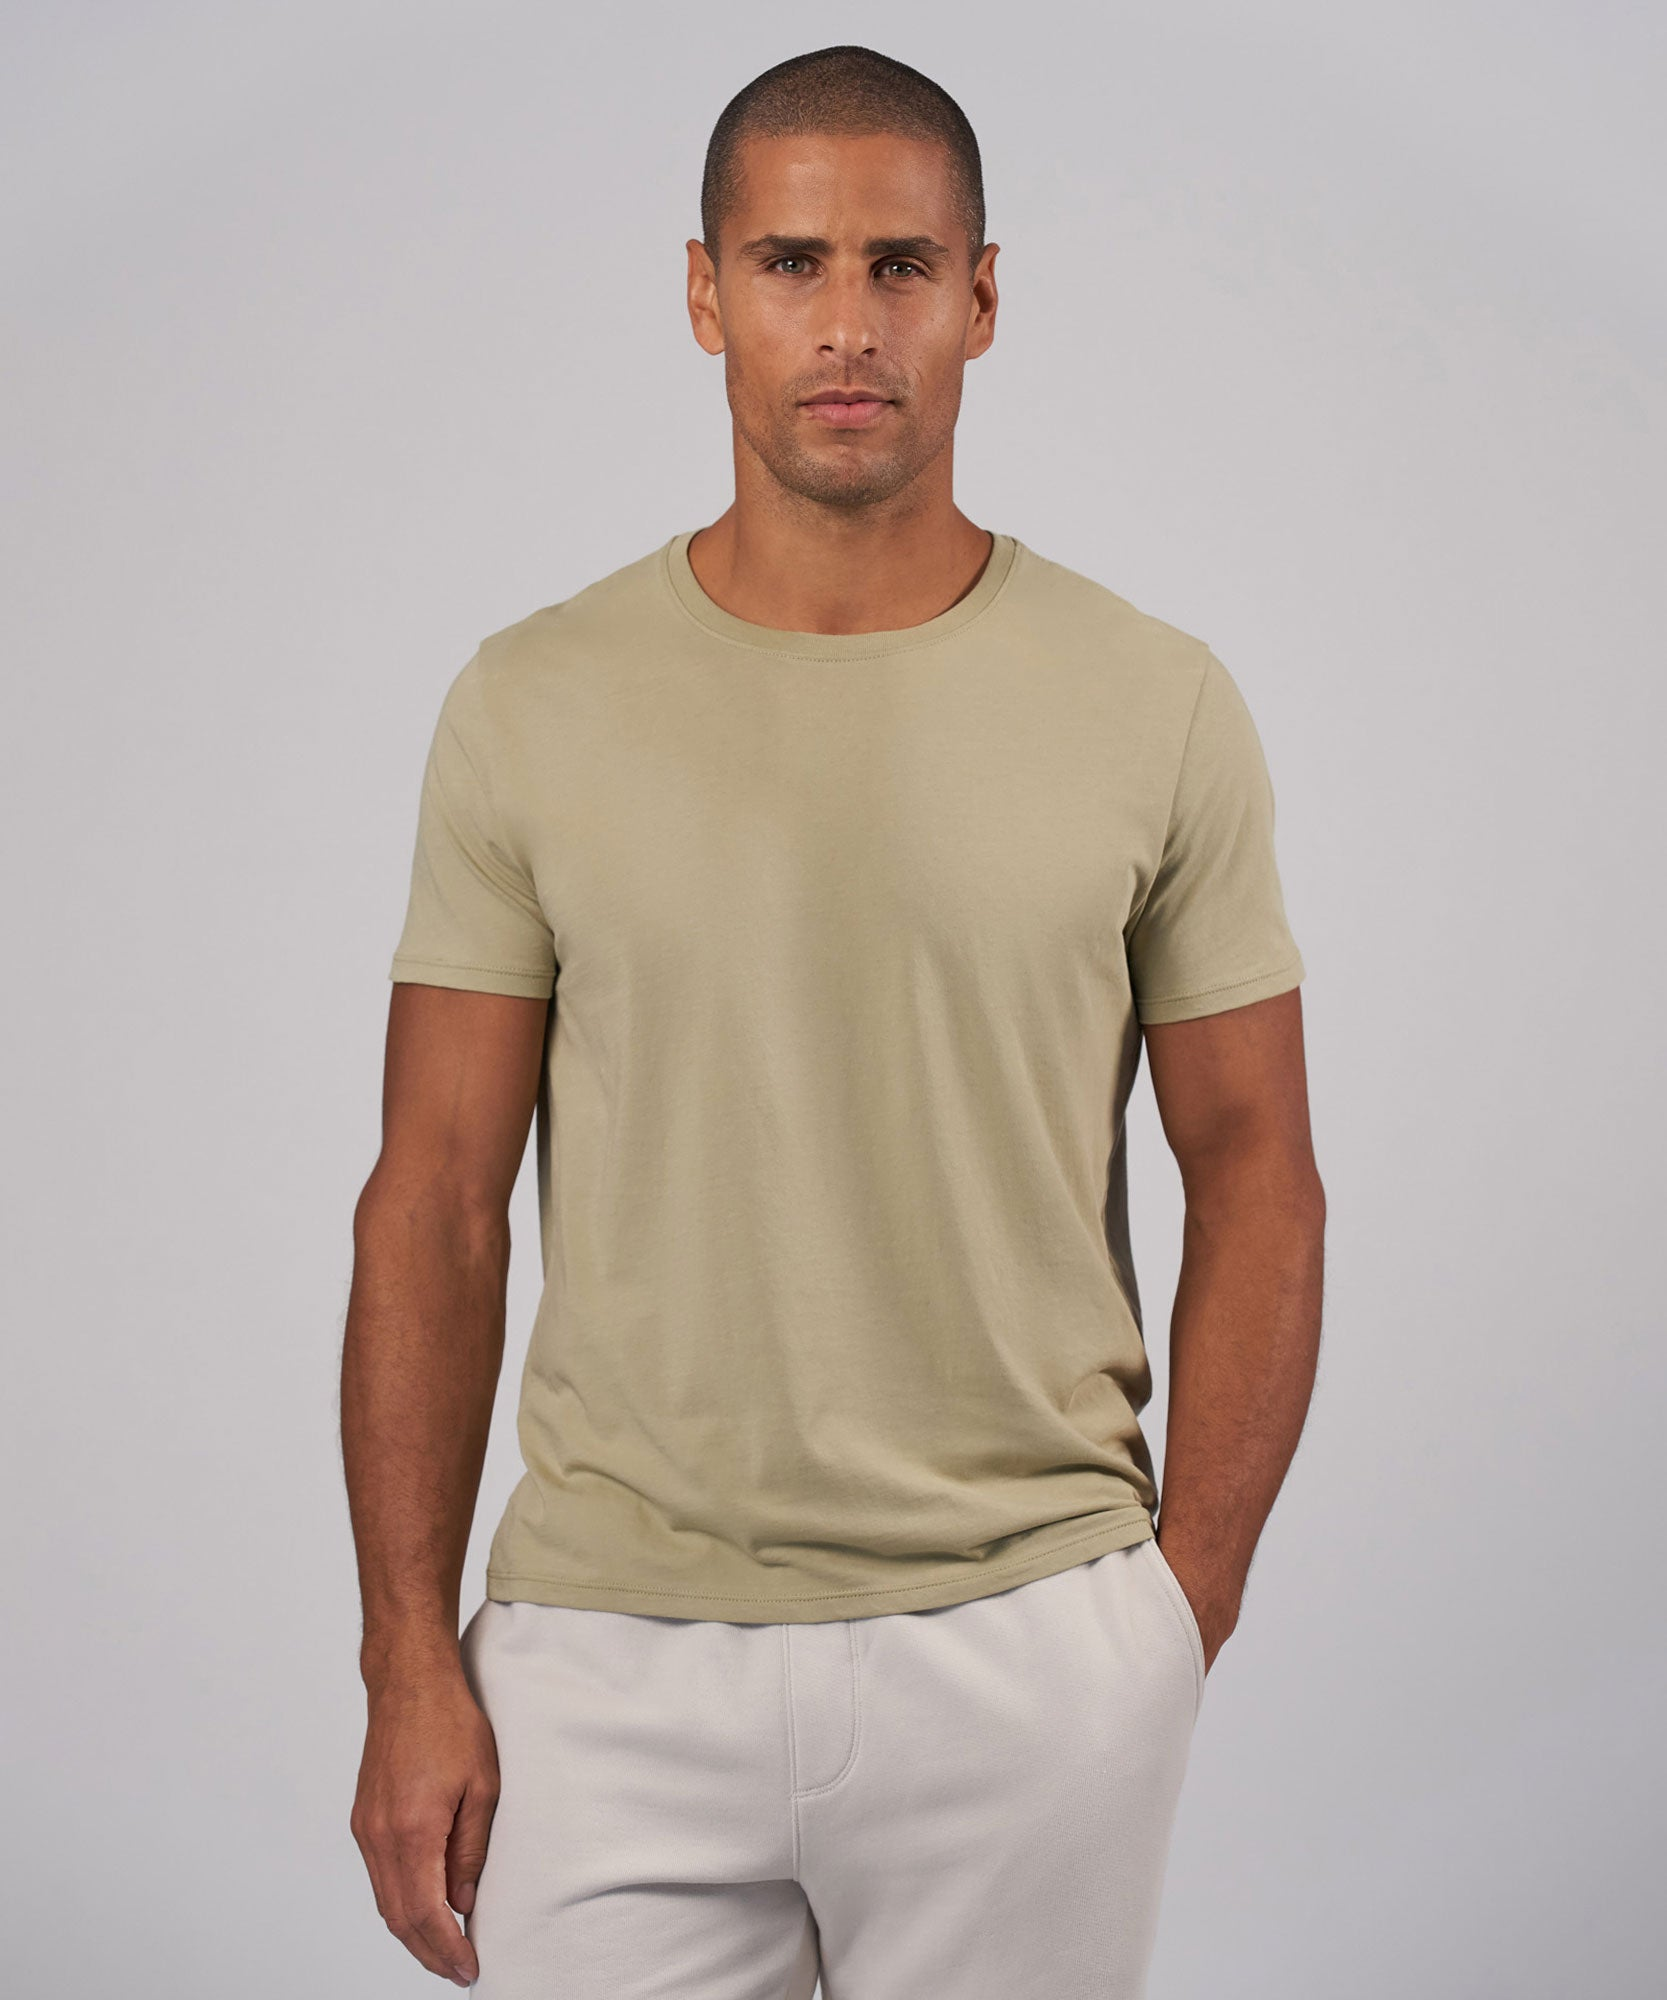 Soft Army Jersey Crew Neck Tee - Men's Short Sleeve T-Shirt by ATM Anthony Thomas Melillo